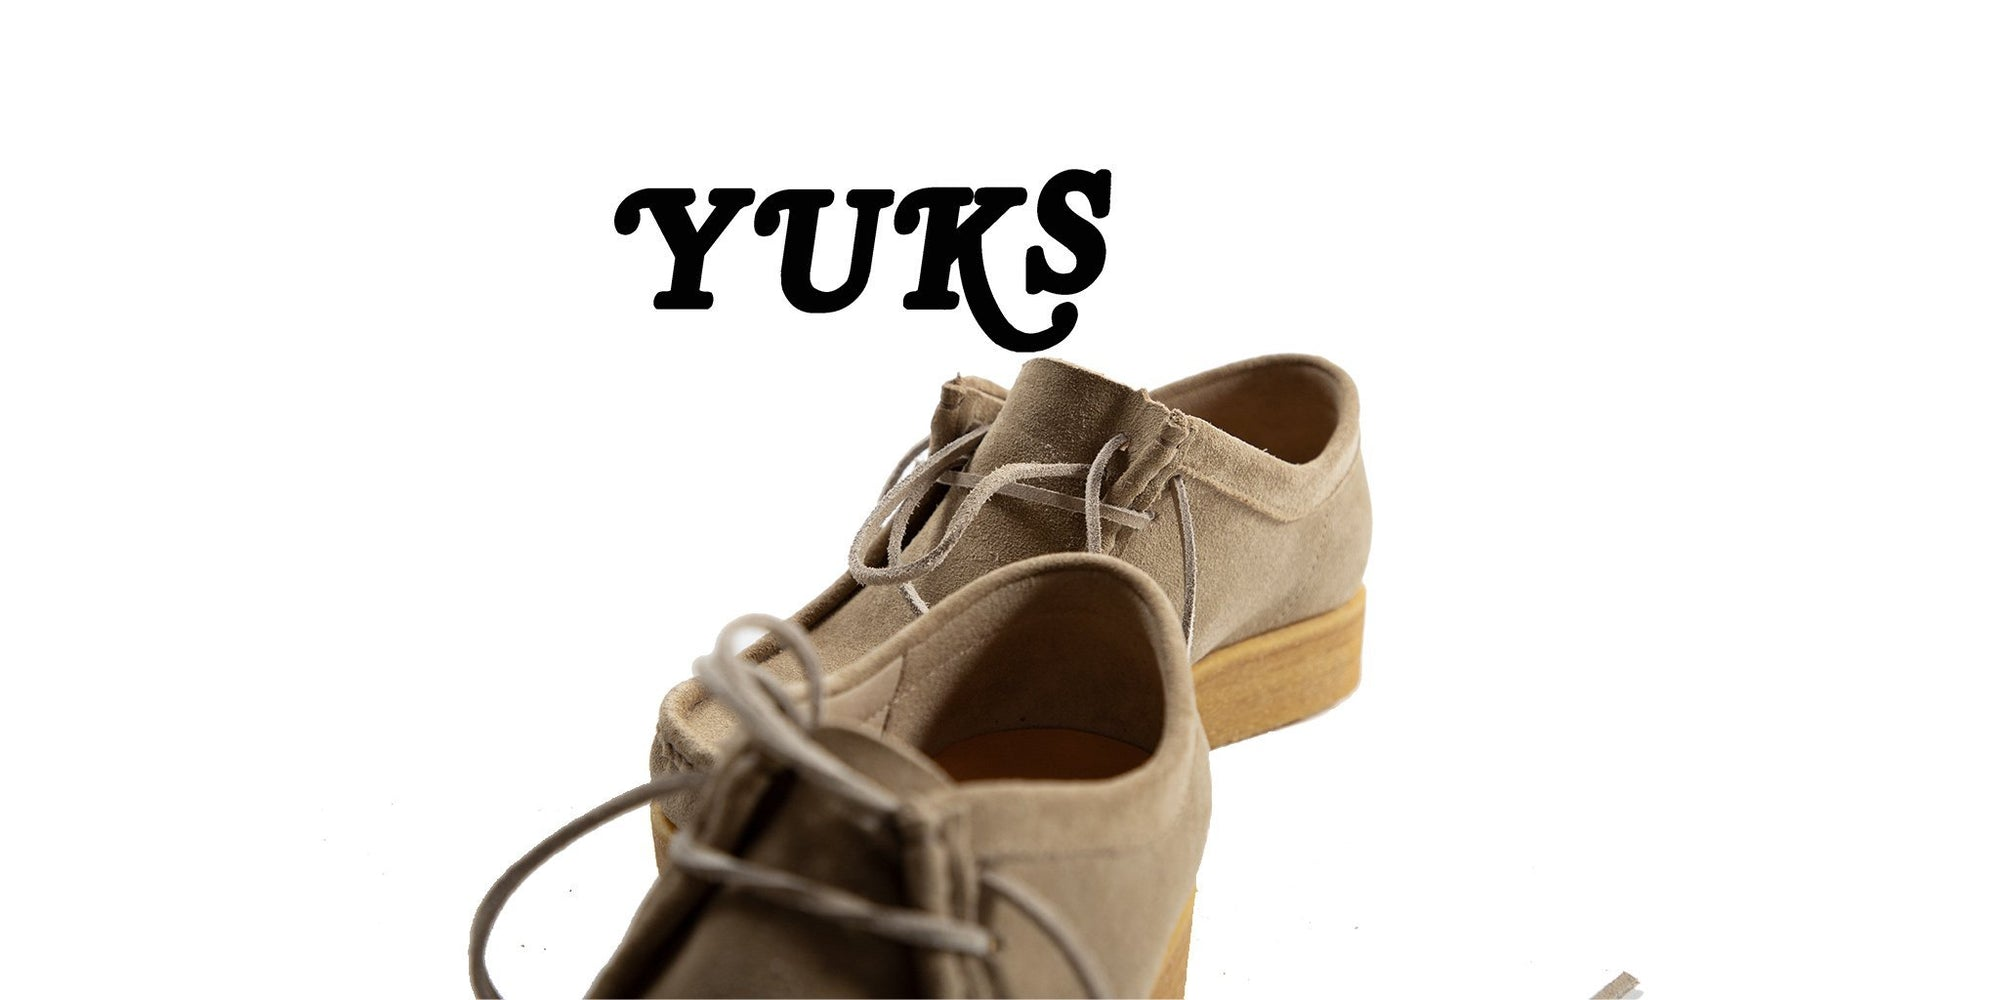 Yuks by Yuketen: Upgrading the Classics